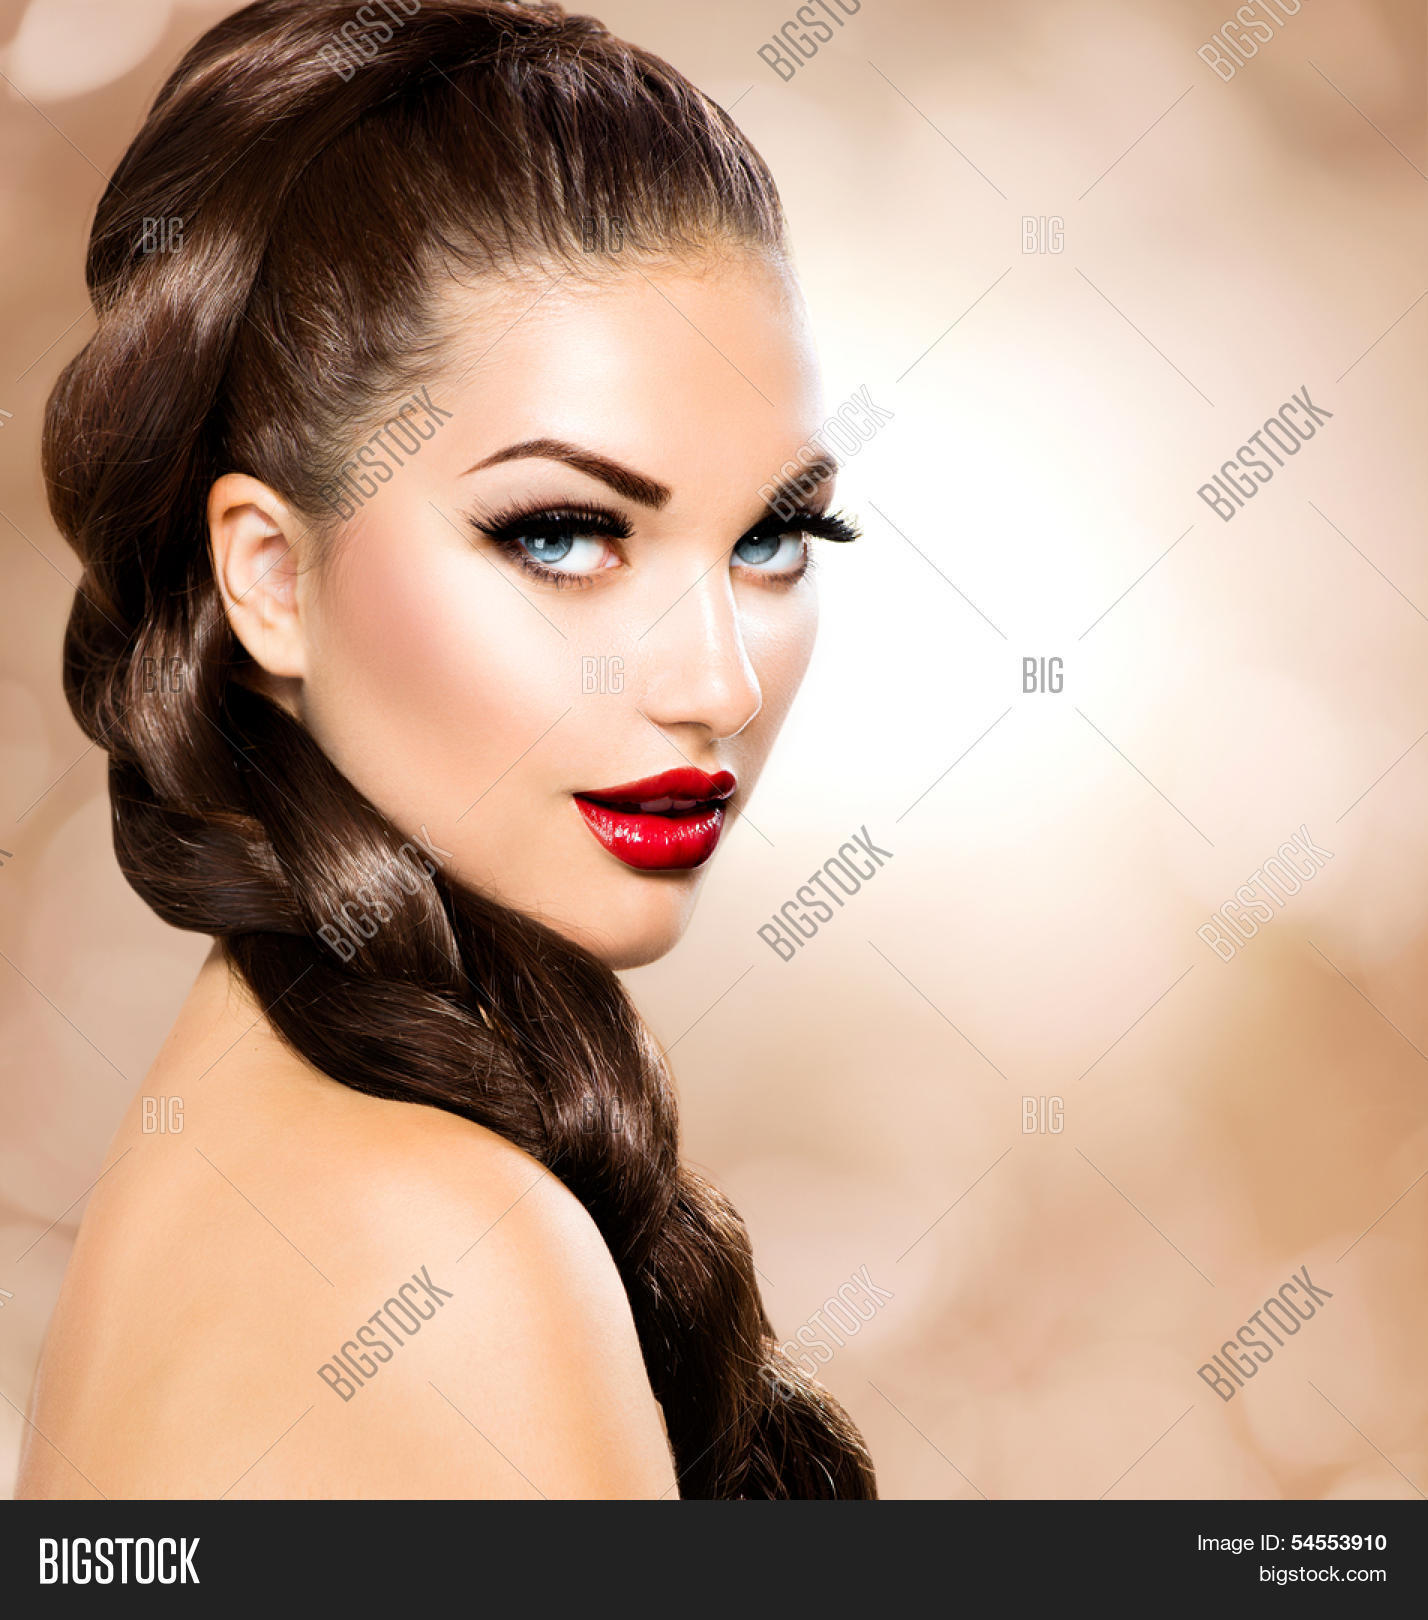 Stock Photo Hair Braid Beautiful Woman With Healthy Long Brown Hair Ha...